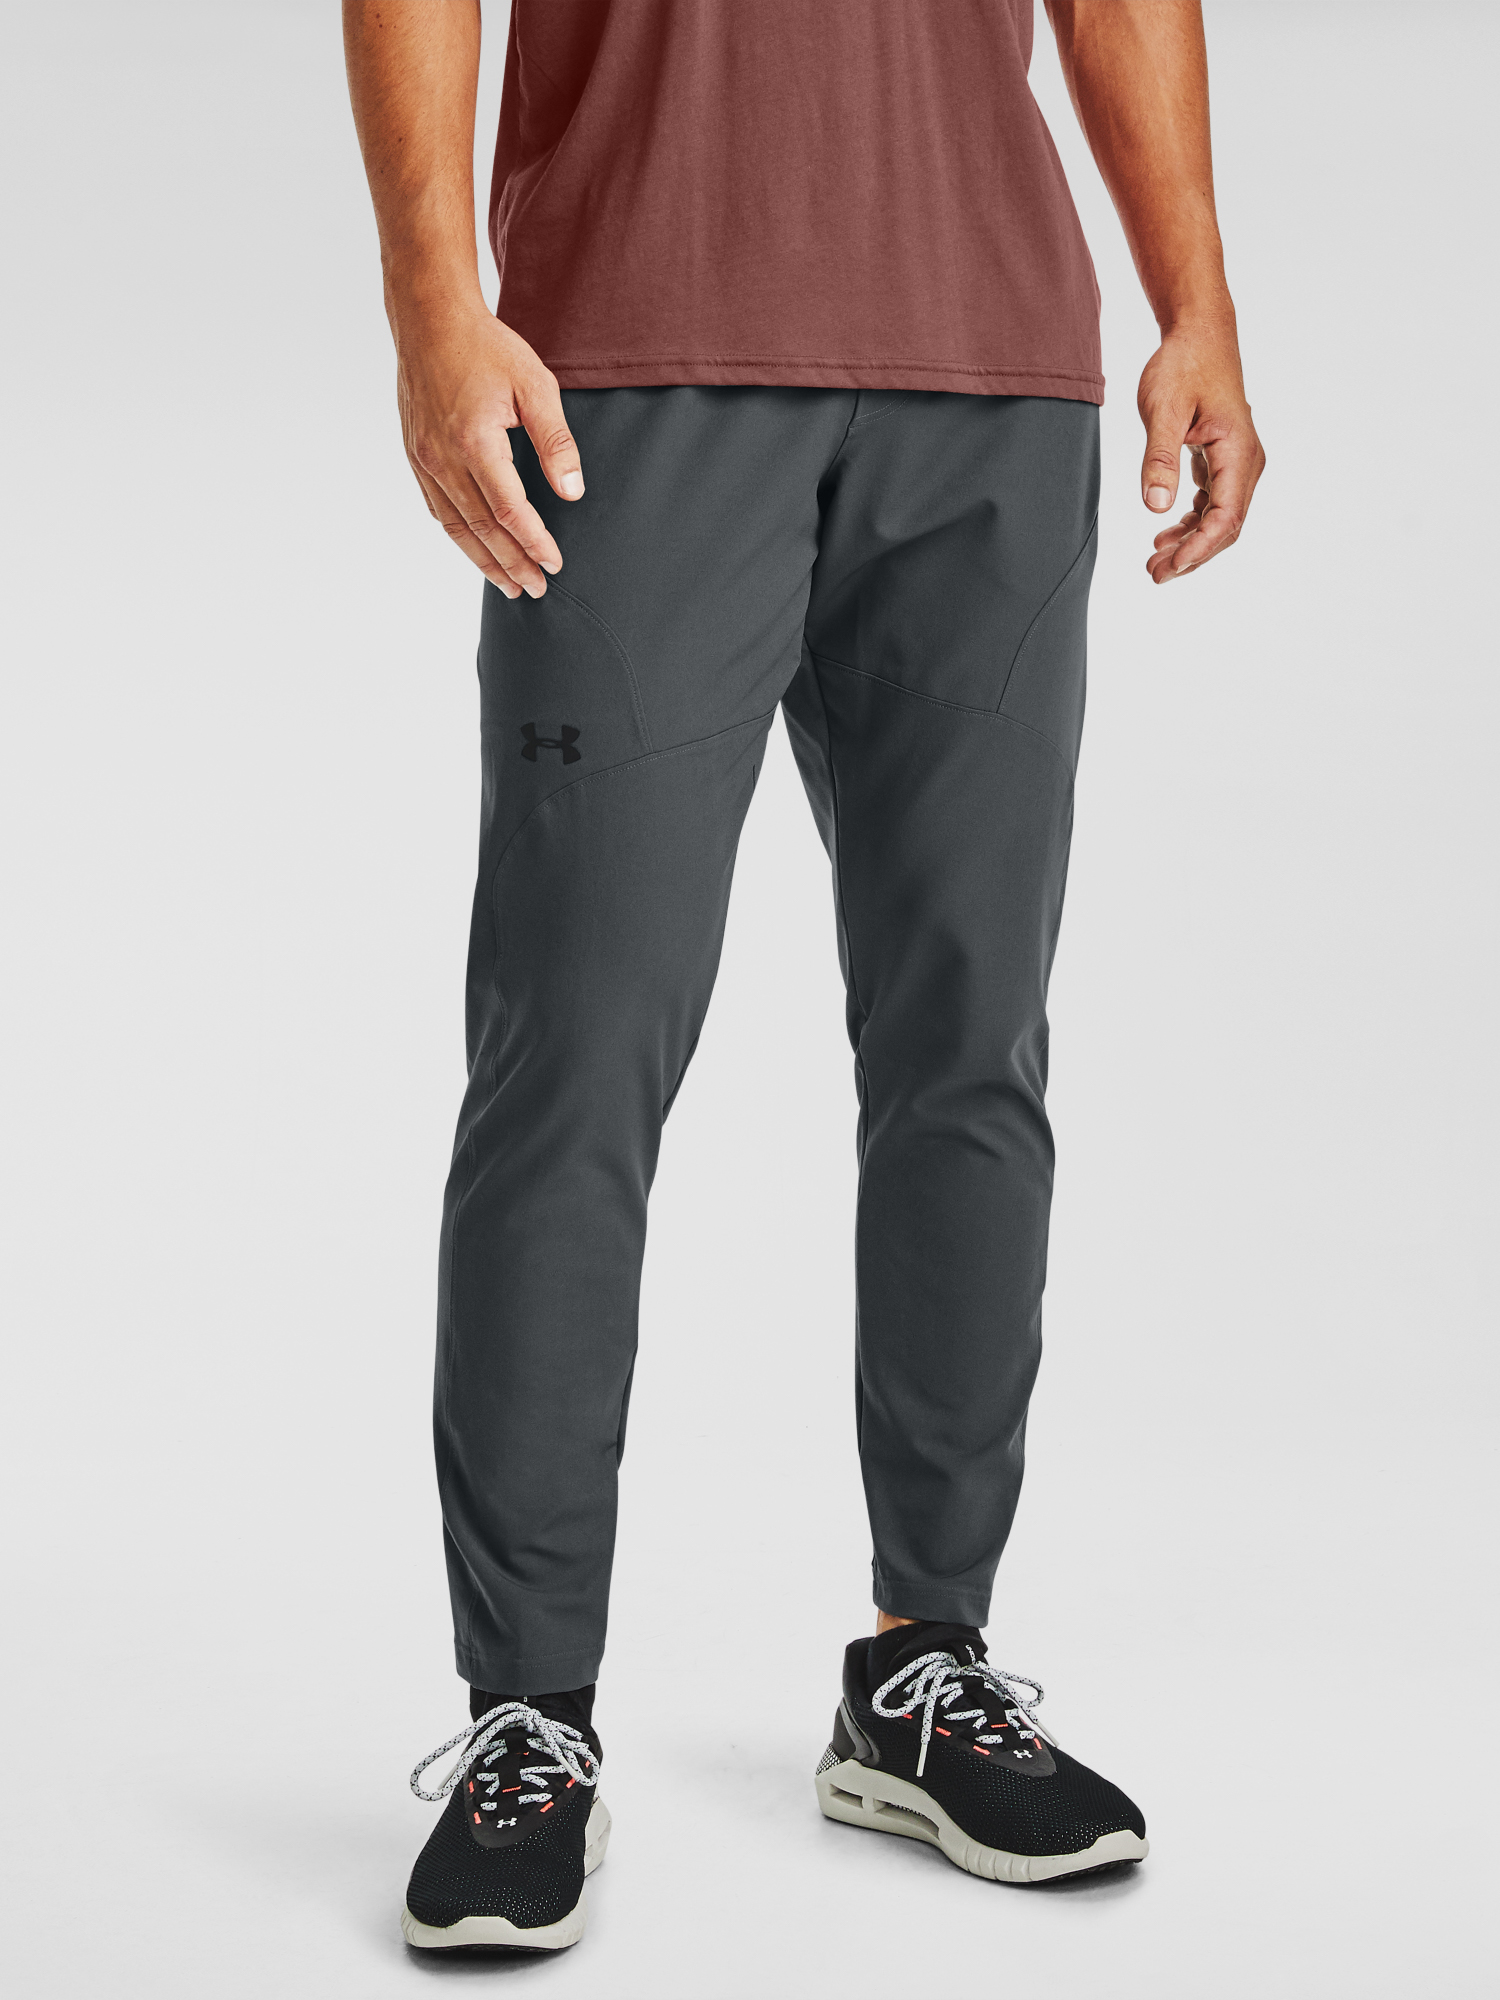 Tepláky Under Armour UA UNSTOPPABLE TAPERED PANTS-GRY (3)